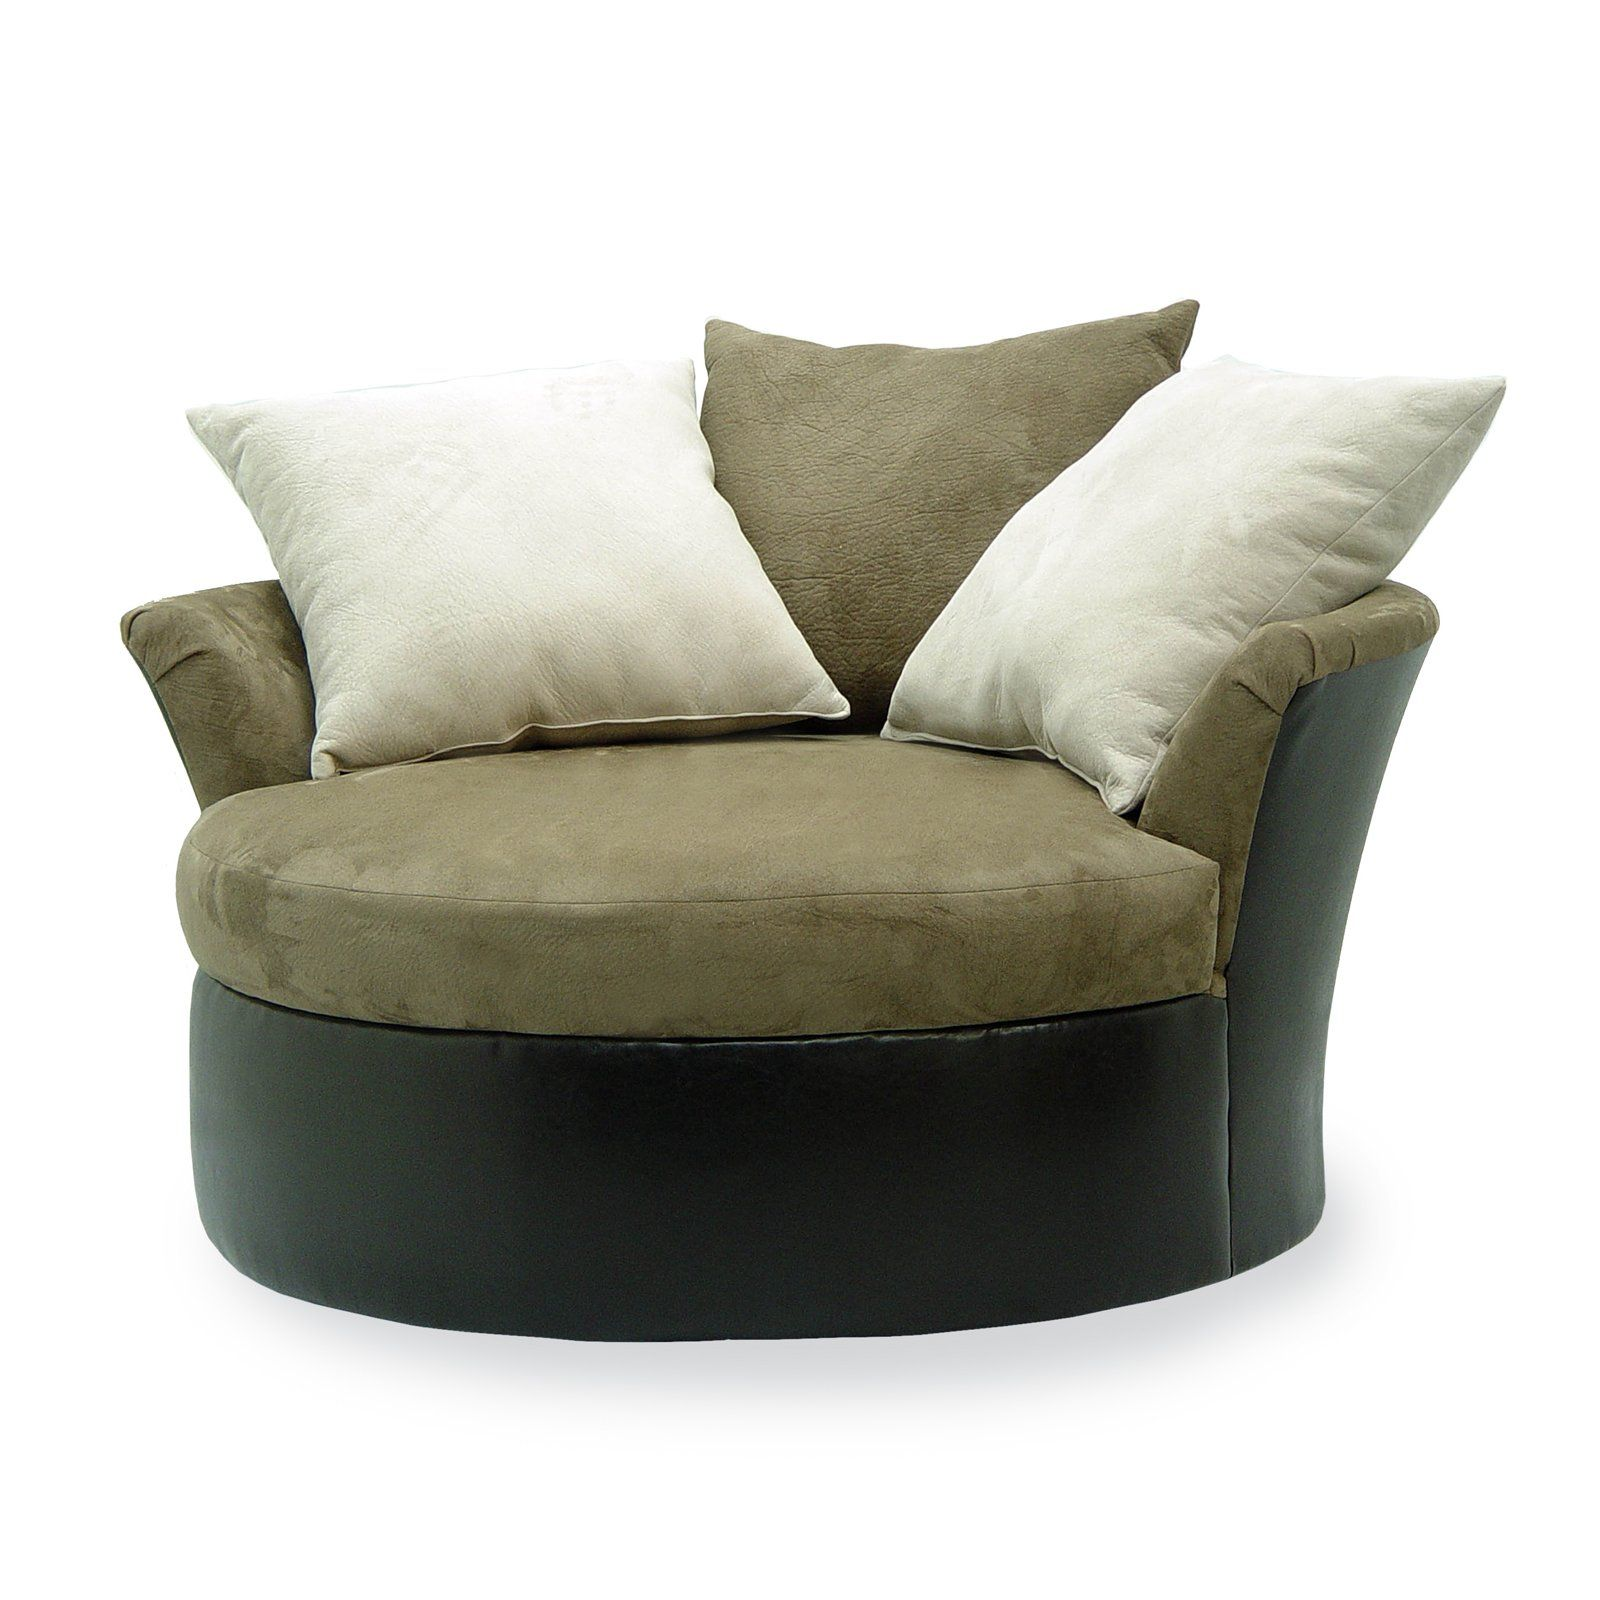 Have To It Sonoma Swivel Chaise Lounge Chair Would So